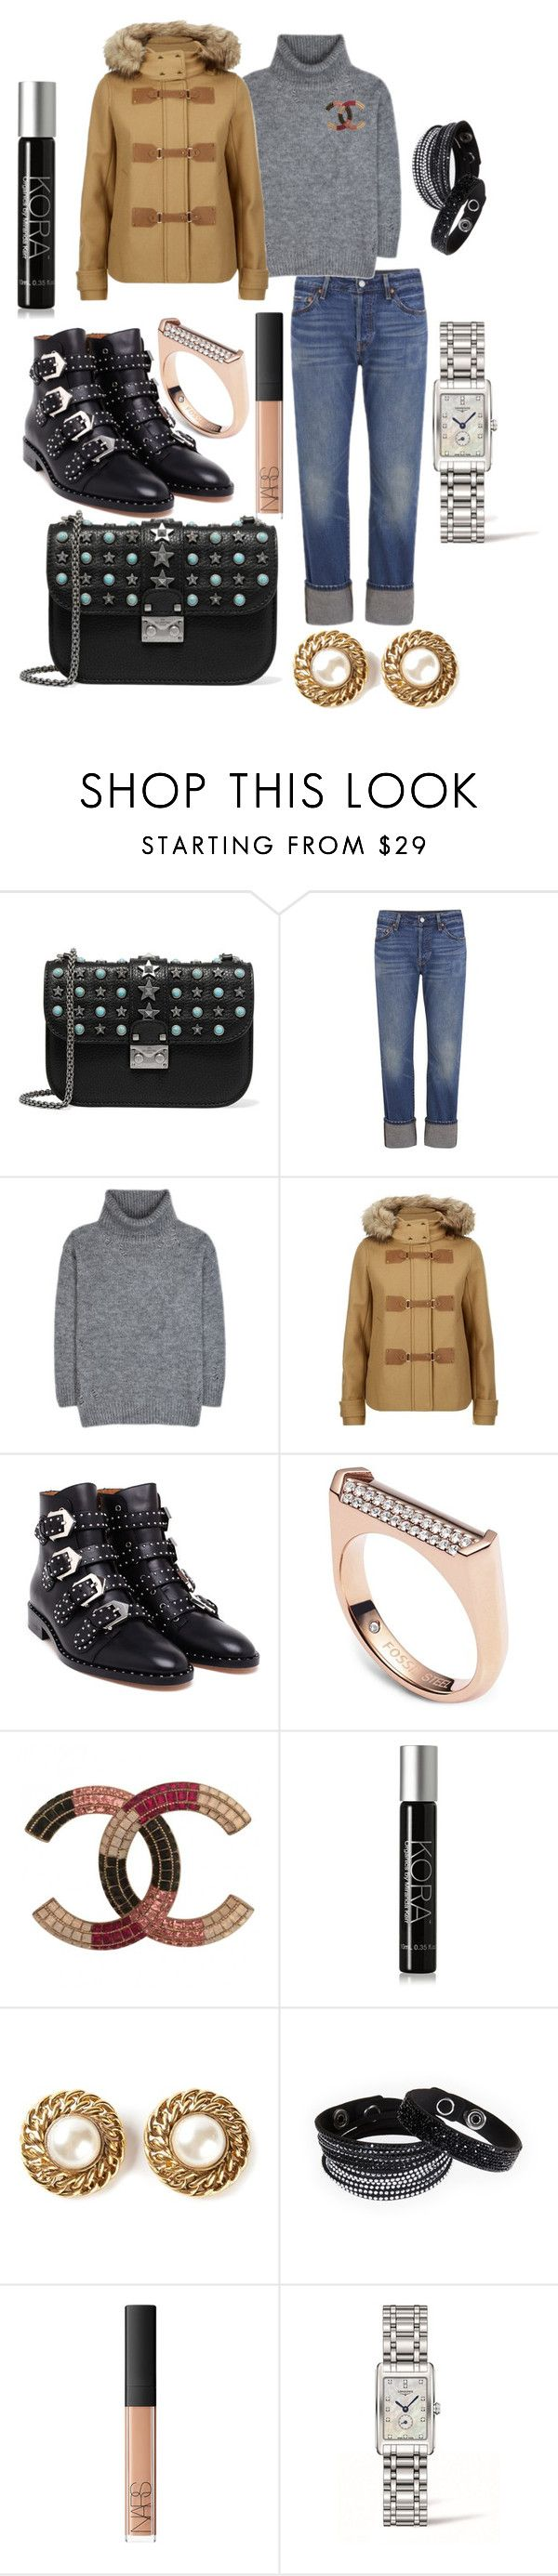 """""""Outfit Of The Day"""" by andreamartin24601 ❤ liked on Polyvore featuring Valentino, Levi's, Yves Saint Laurent, MICHAEL Michael Kors, Givenchy, FOSSIL, Chanel, KORA Organics by Miranda Kerr, Swarovski and NARS Cosmetics"""